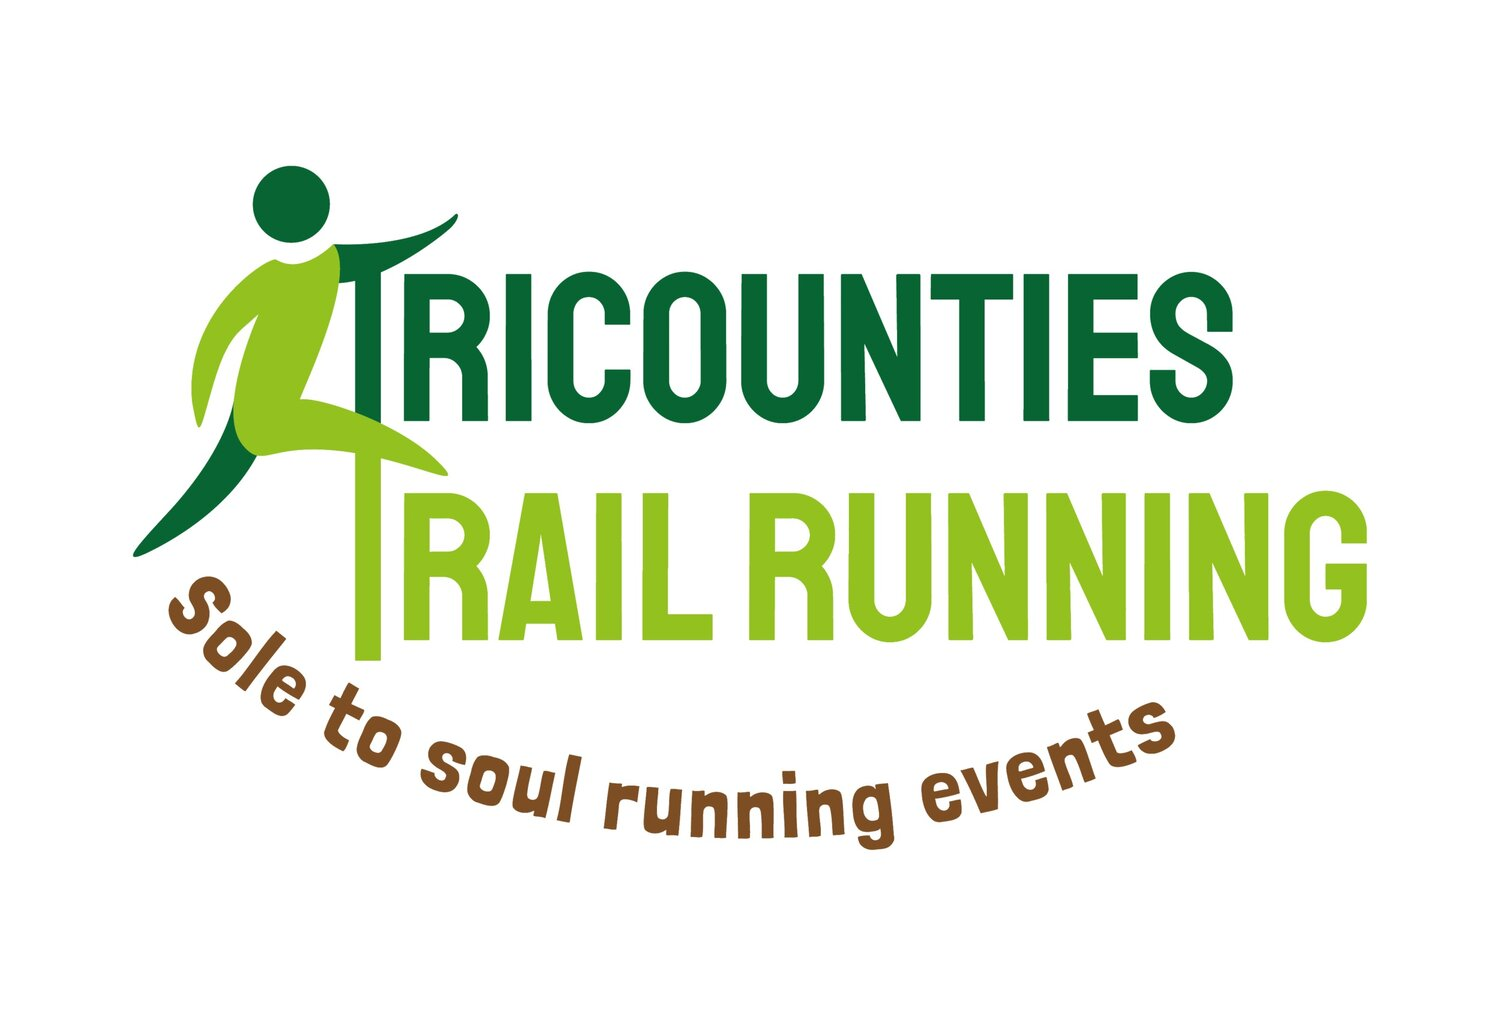 Tri-Counties Trail Running